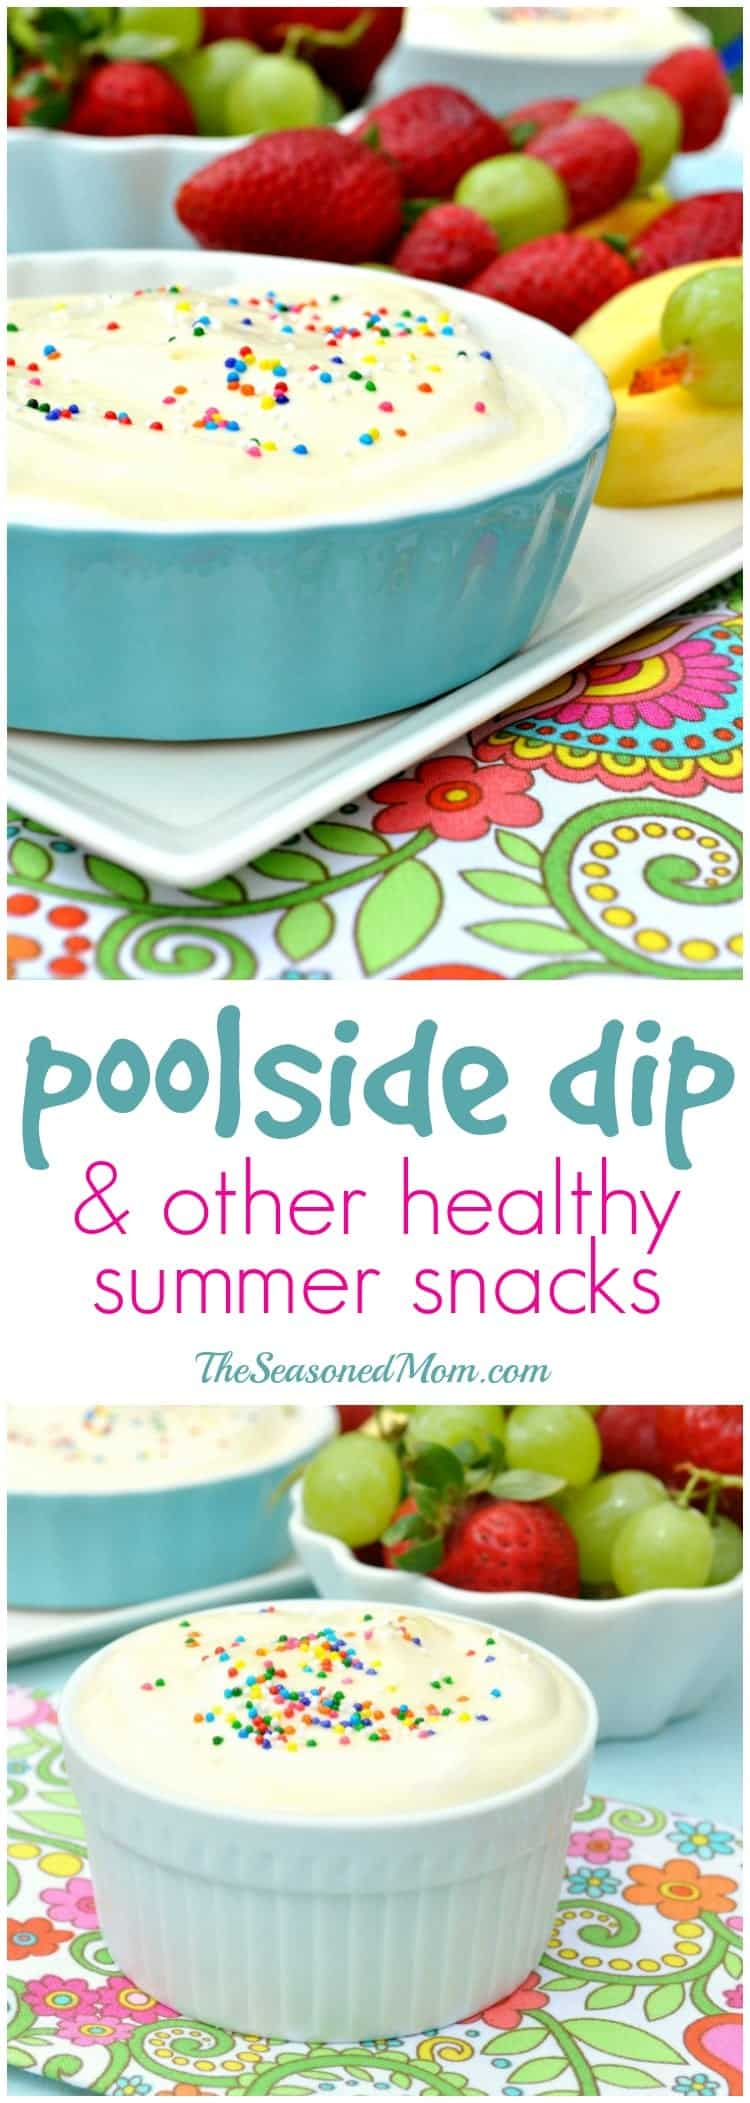 Poolside Dip and Other Healthy Summer Snacks